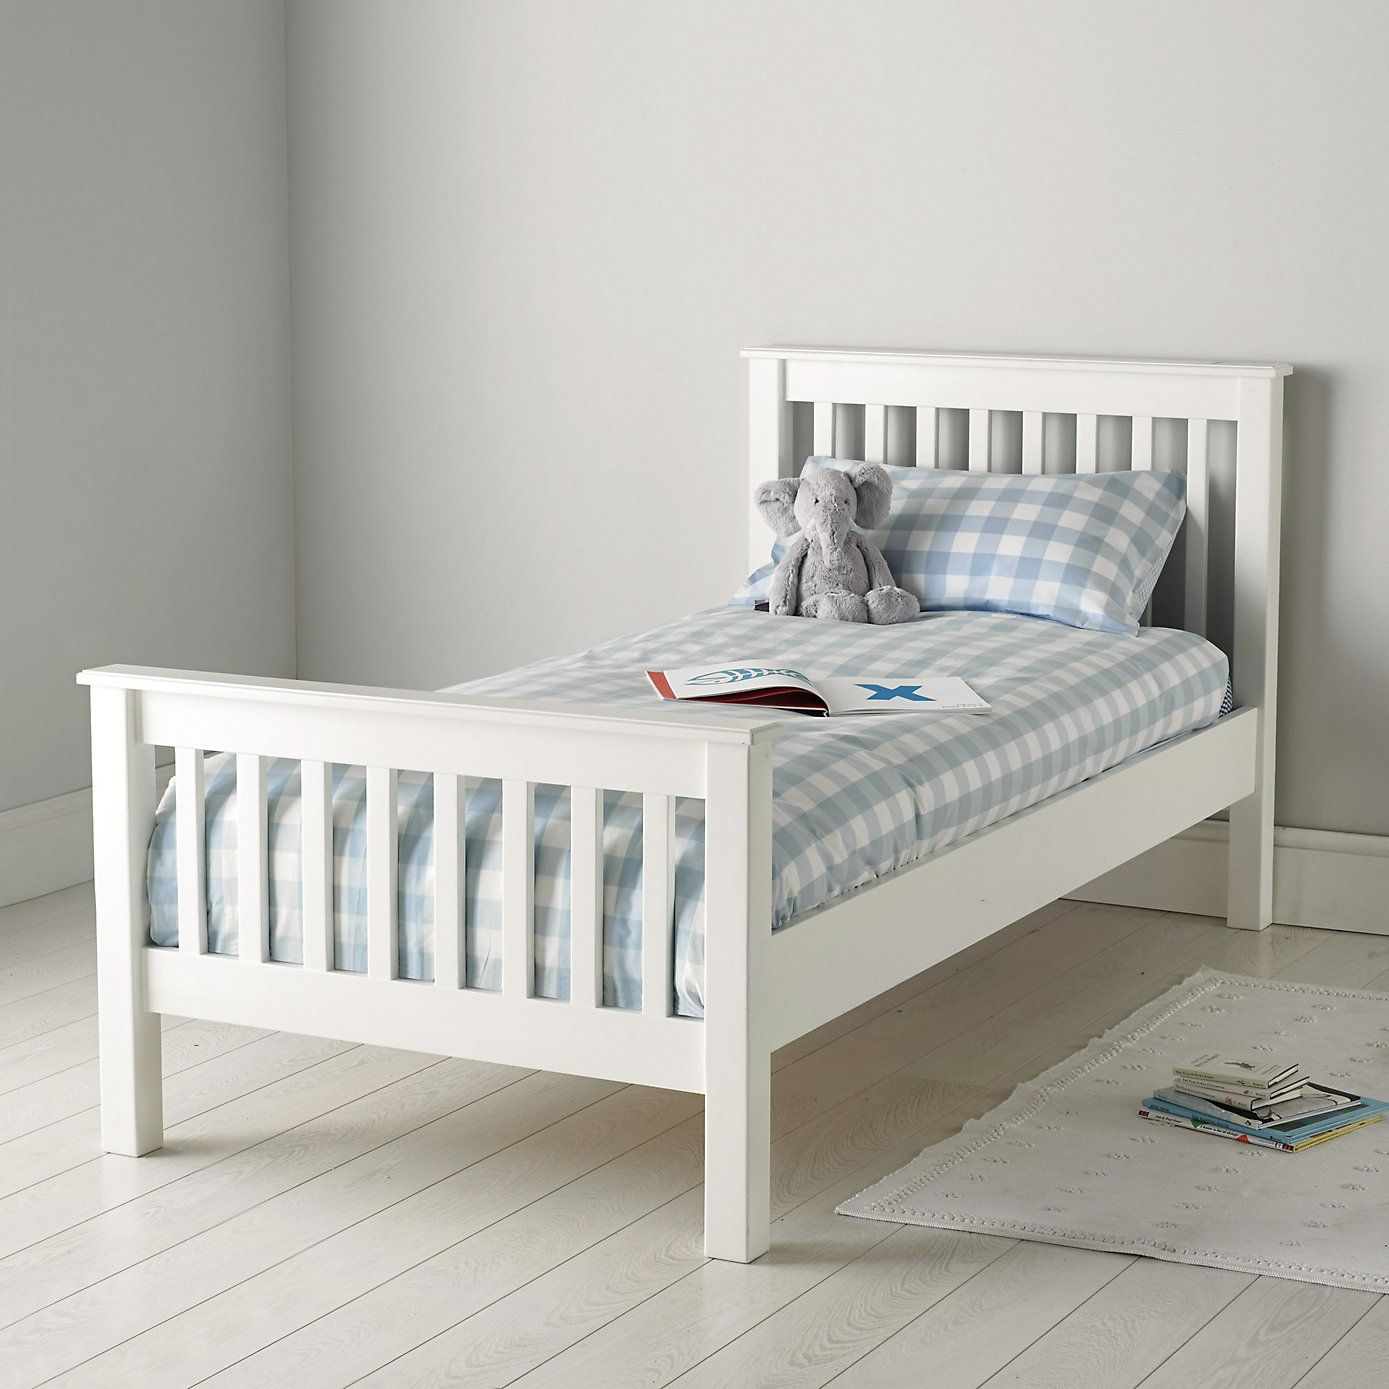 Best Classic Single Bed The White Company White Blue And 400 x 300